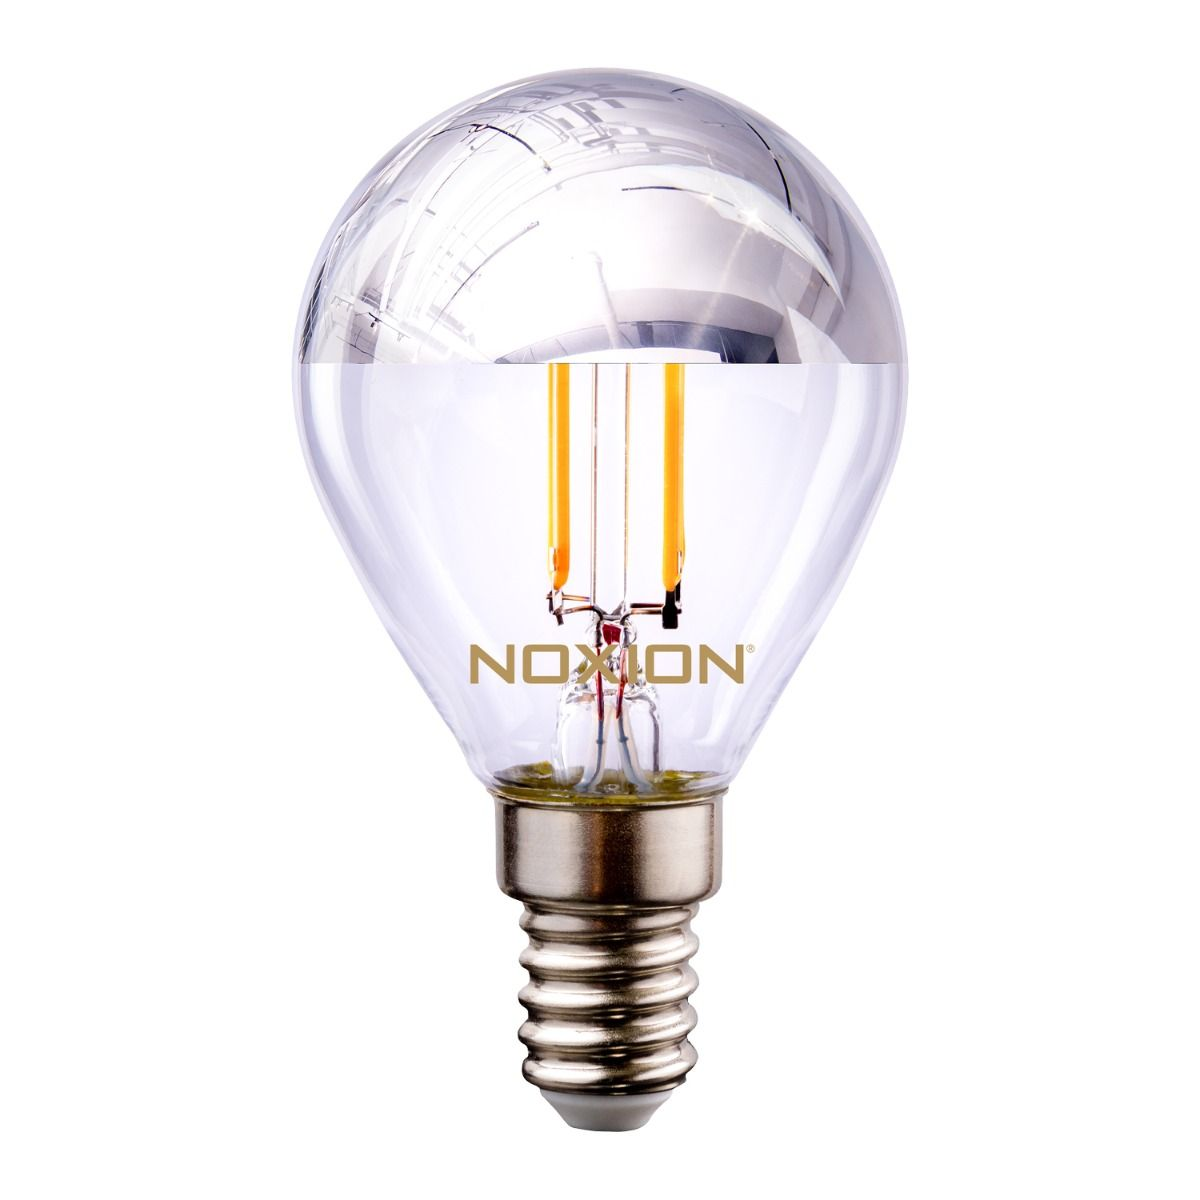 Noxion Lucent Filament LED Lustre hopea Mirror P45 E14 220-240V 4.5W 400LM CRI80 2700K ND (40W eqv)